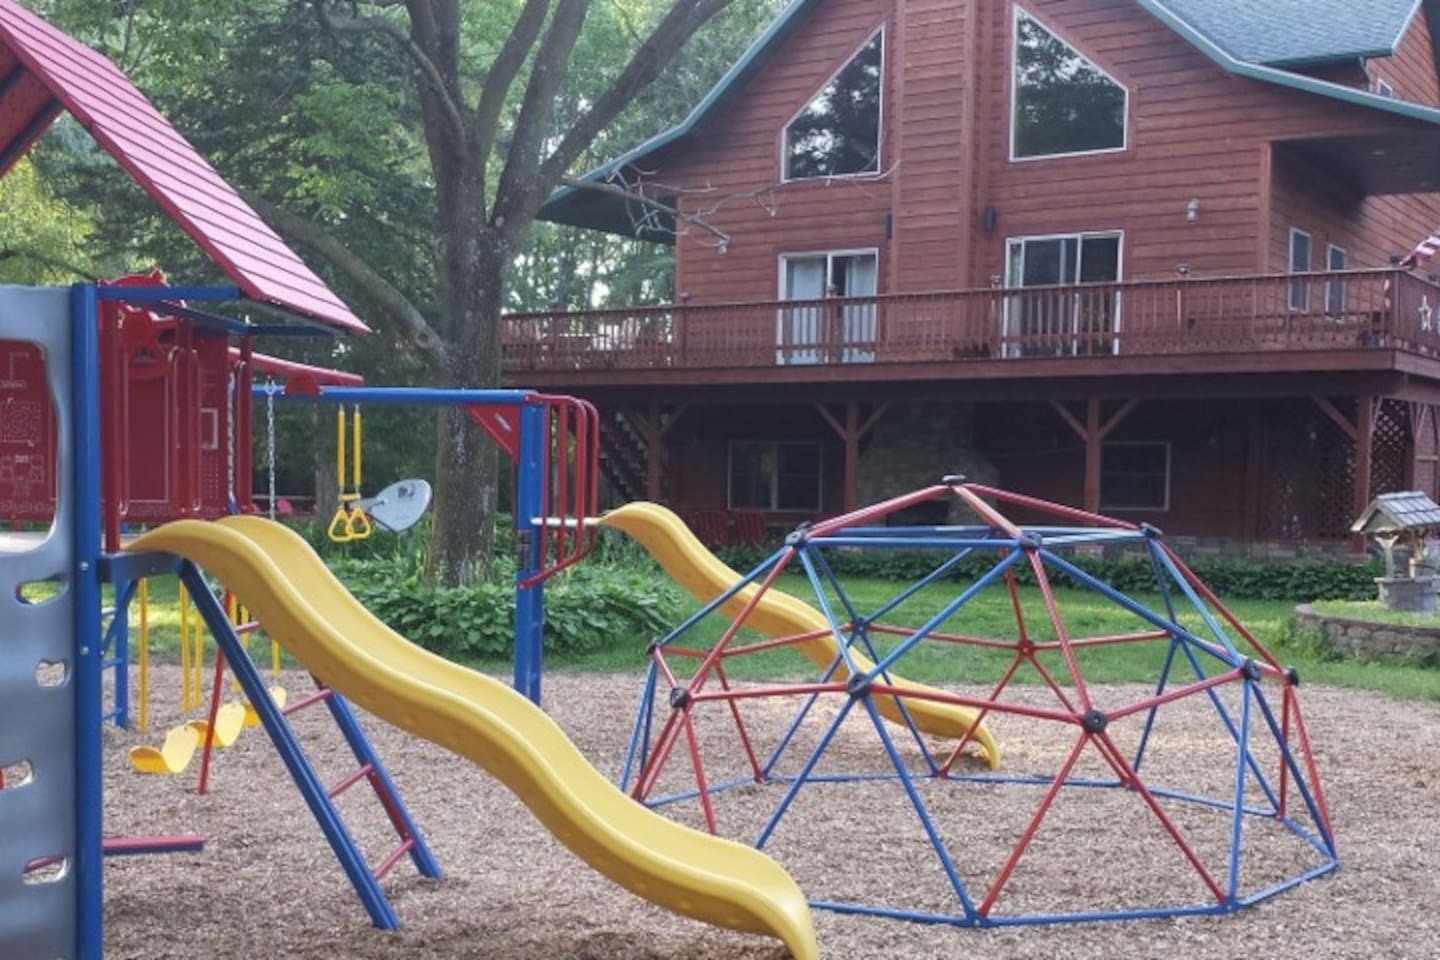 Playset and play area on premises